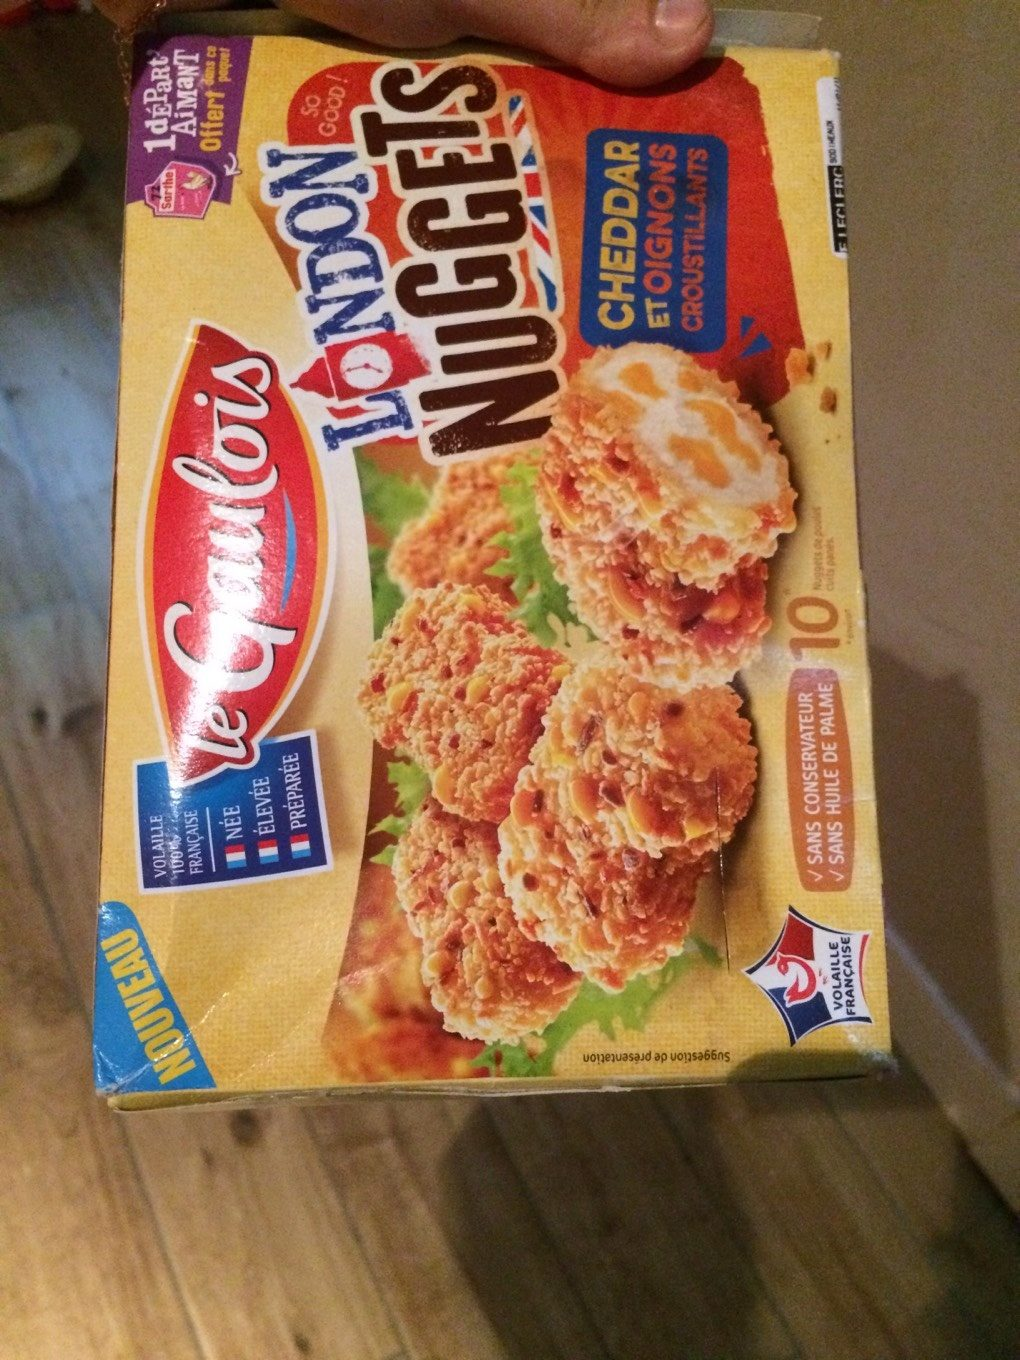 Nuggets chedar oignons - Product